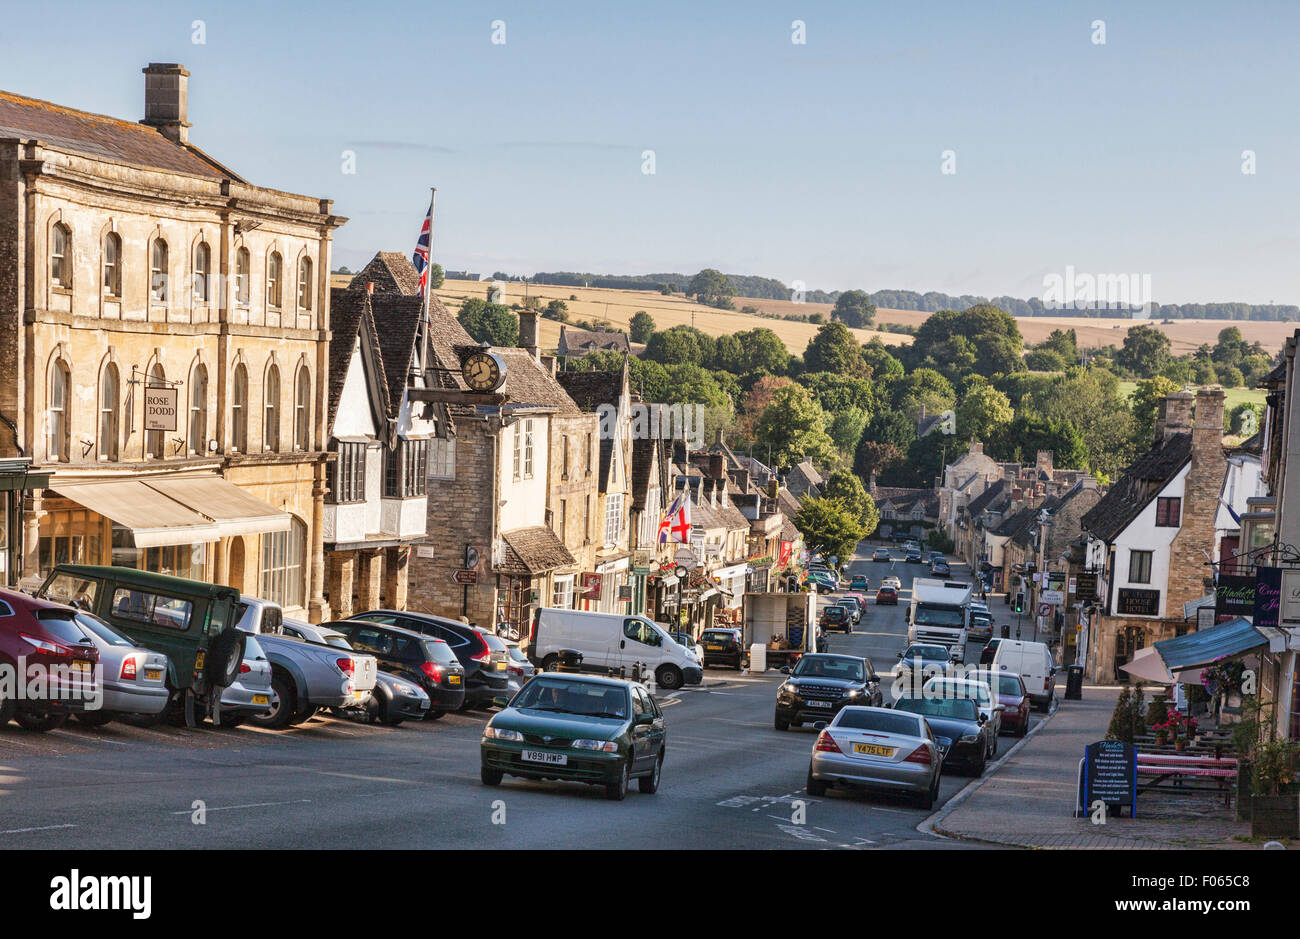 Heavy traffic in the Cotswolds village of Burford, Oxfordshire, England - Stock Image